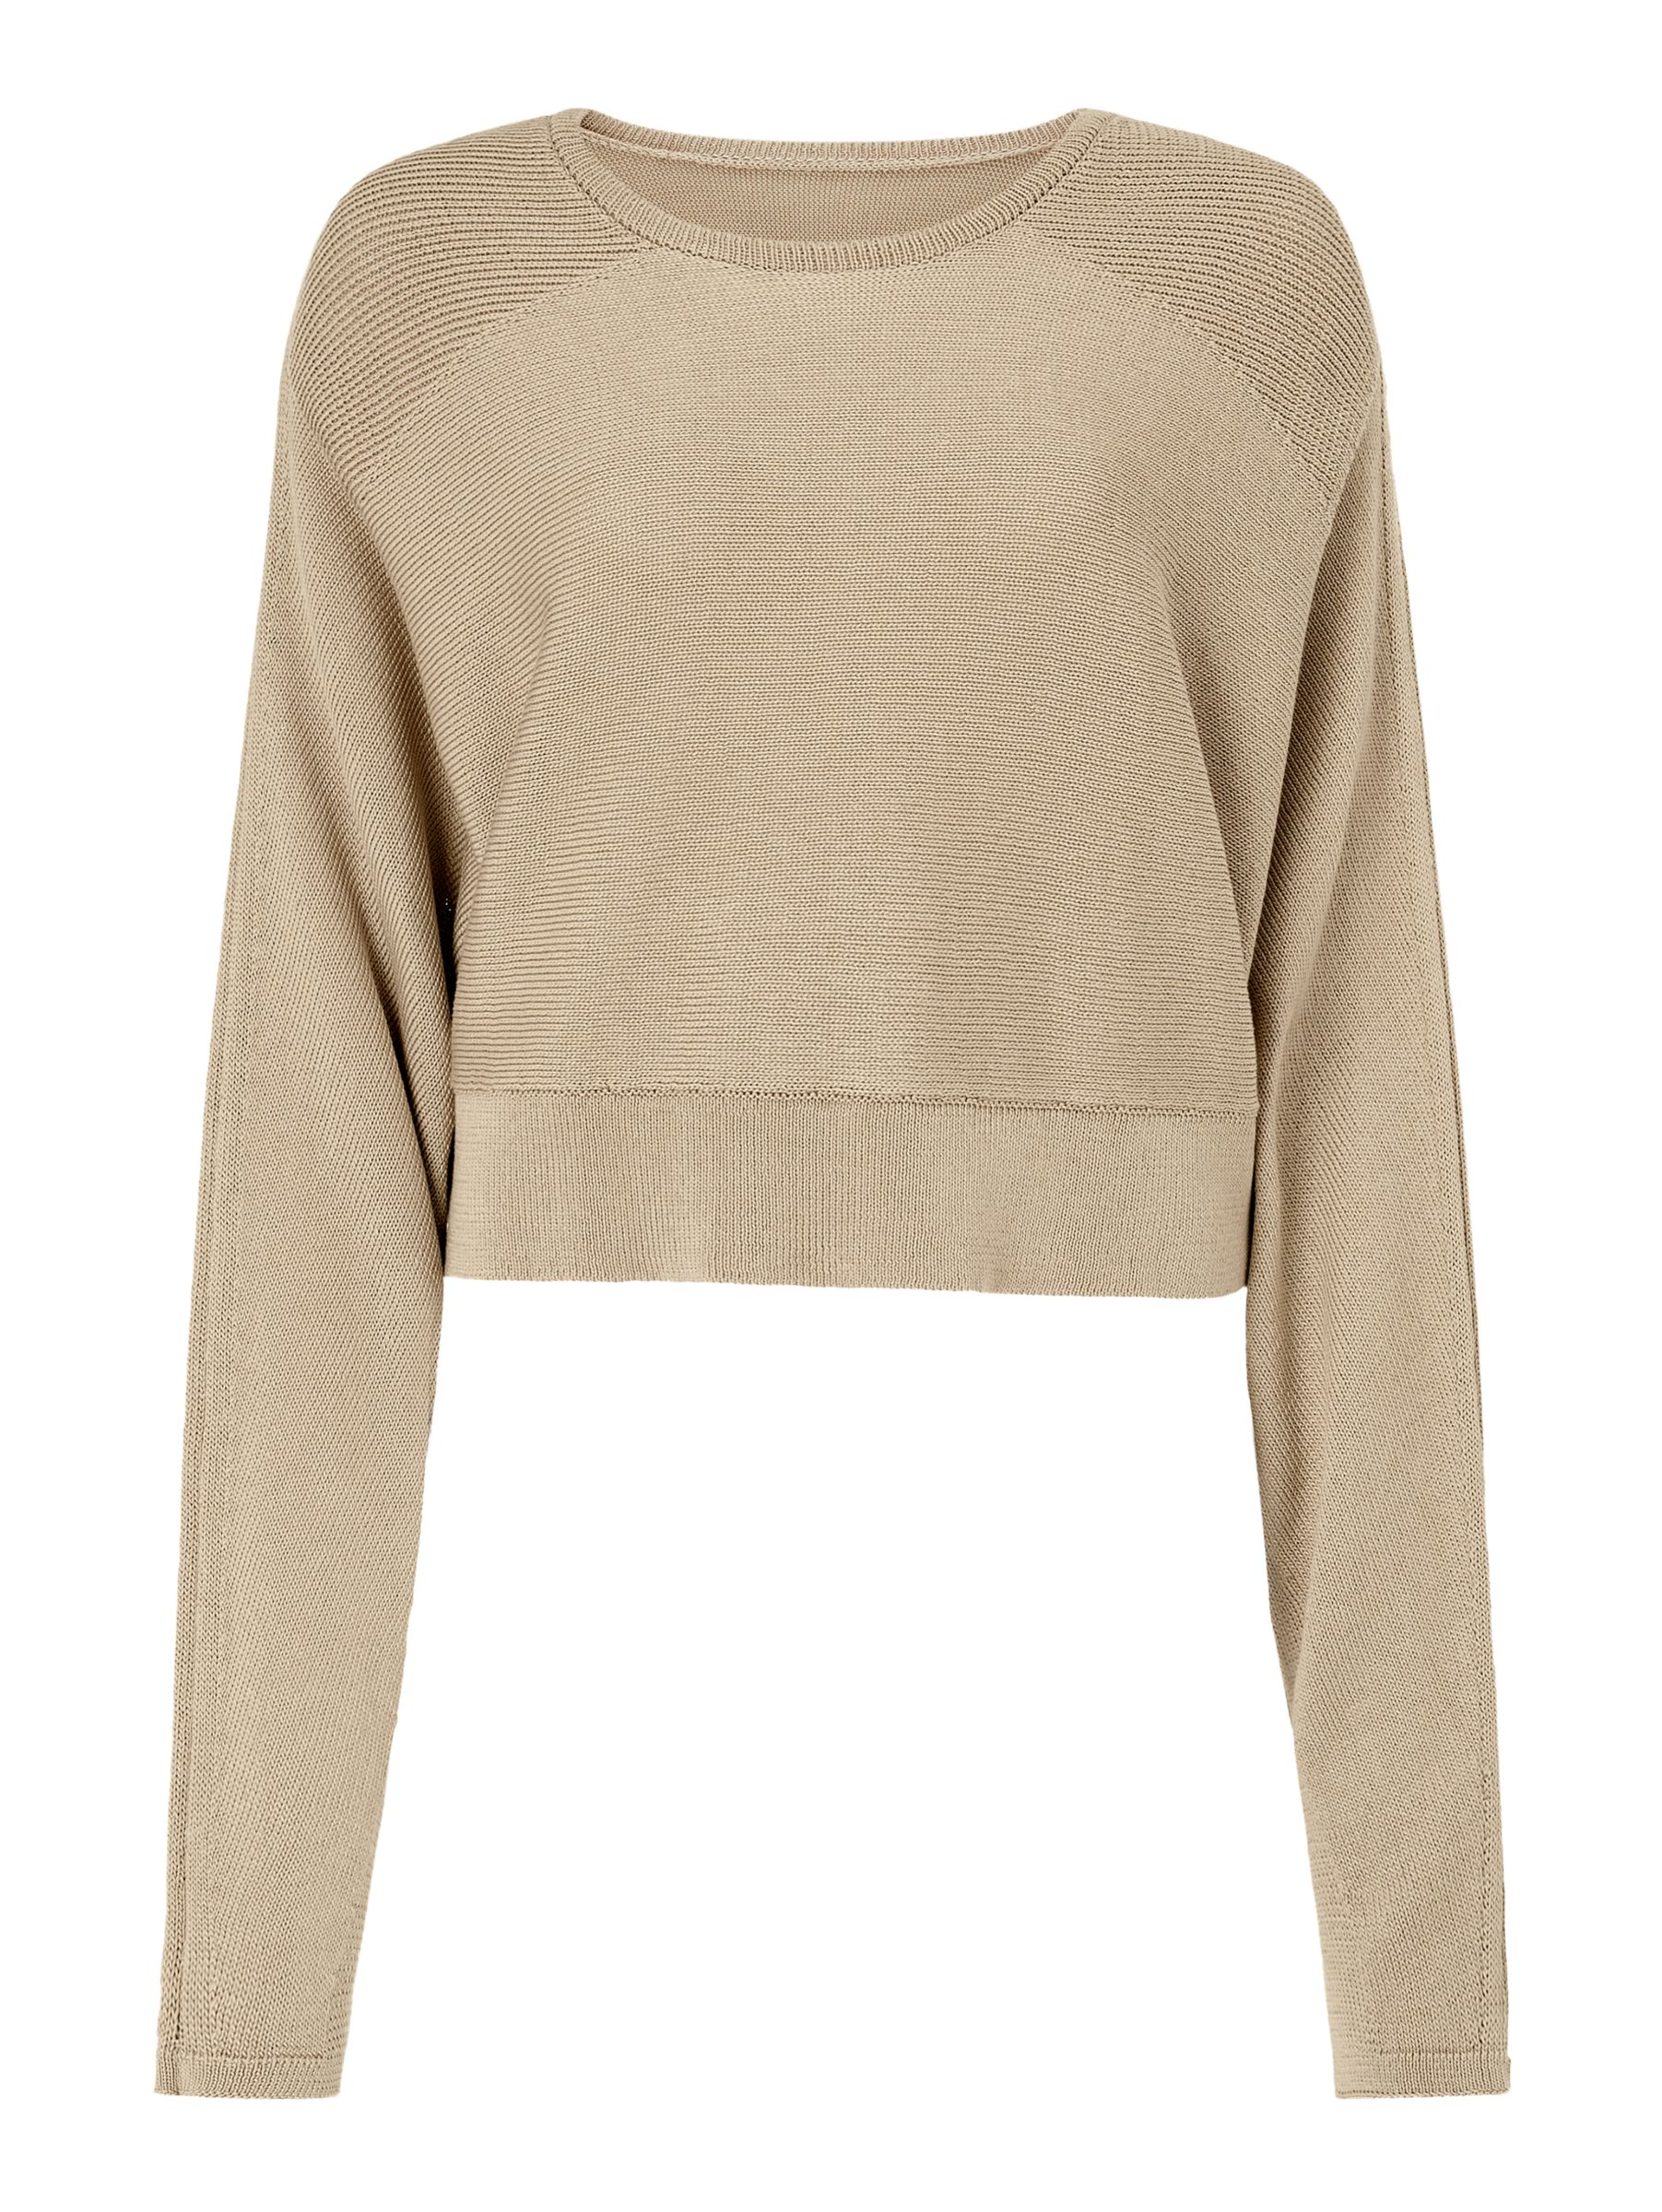 BuyModern Rarity J. JS Lee Cropped Jumper, Brown, XS Online at johnlewis.com